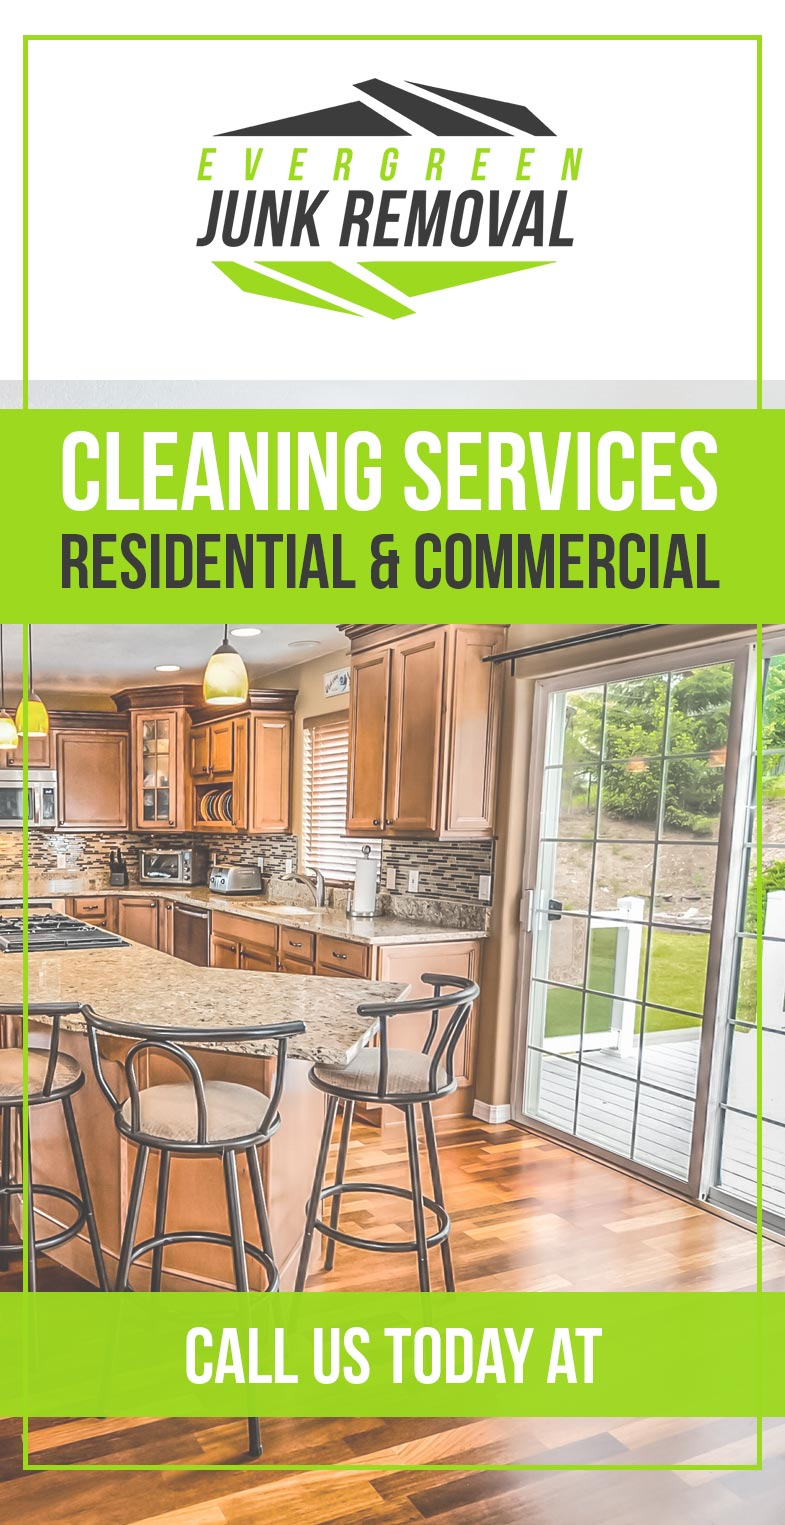 Juno Beach Maid Services